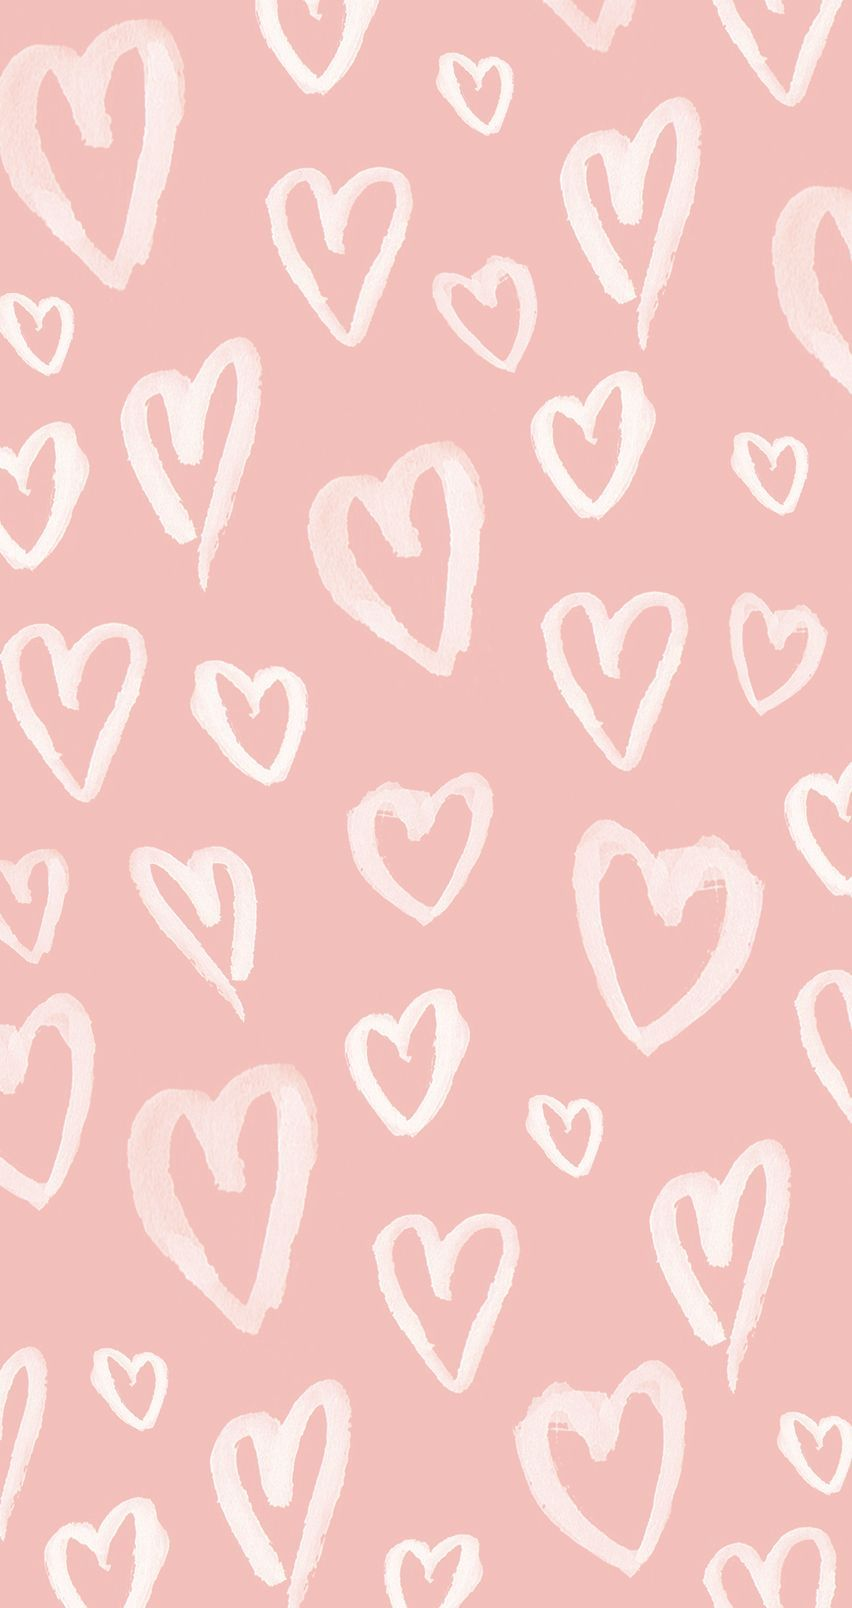 852x1608 Beautiful Pastel Pink Hearts Iphone Wallpaper @panpins ...